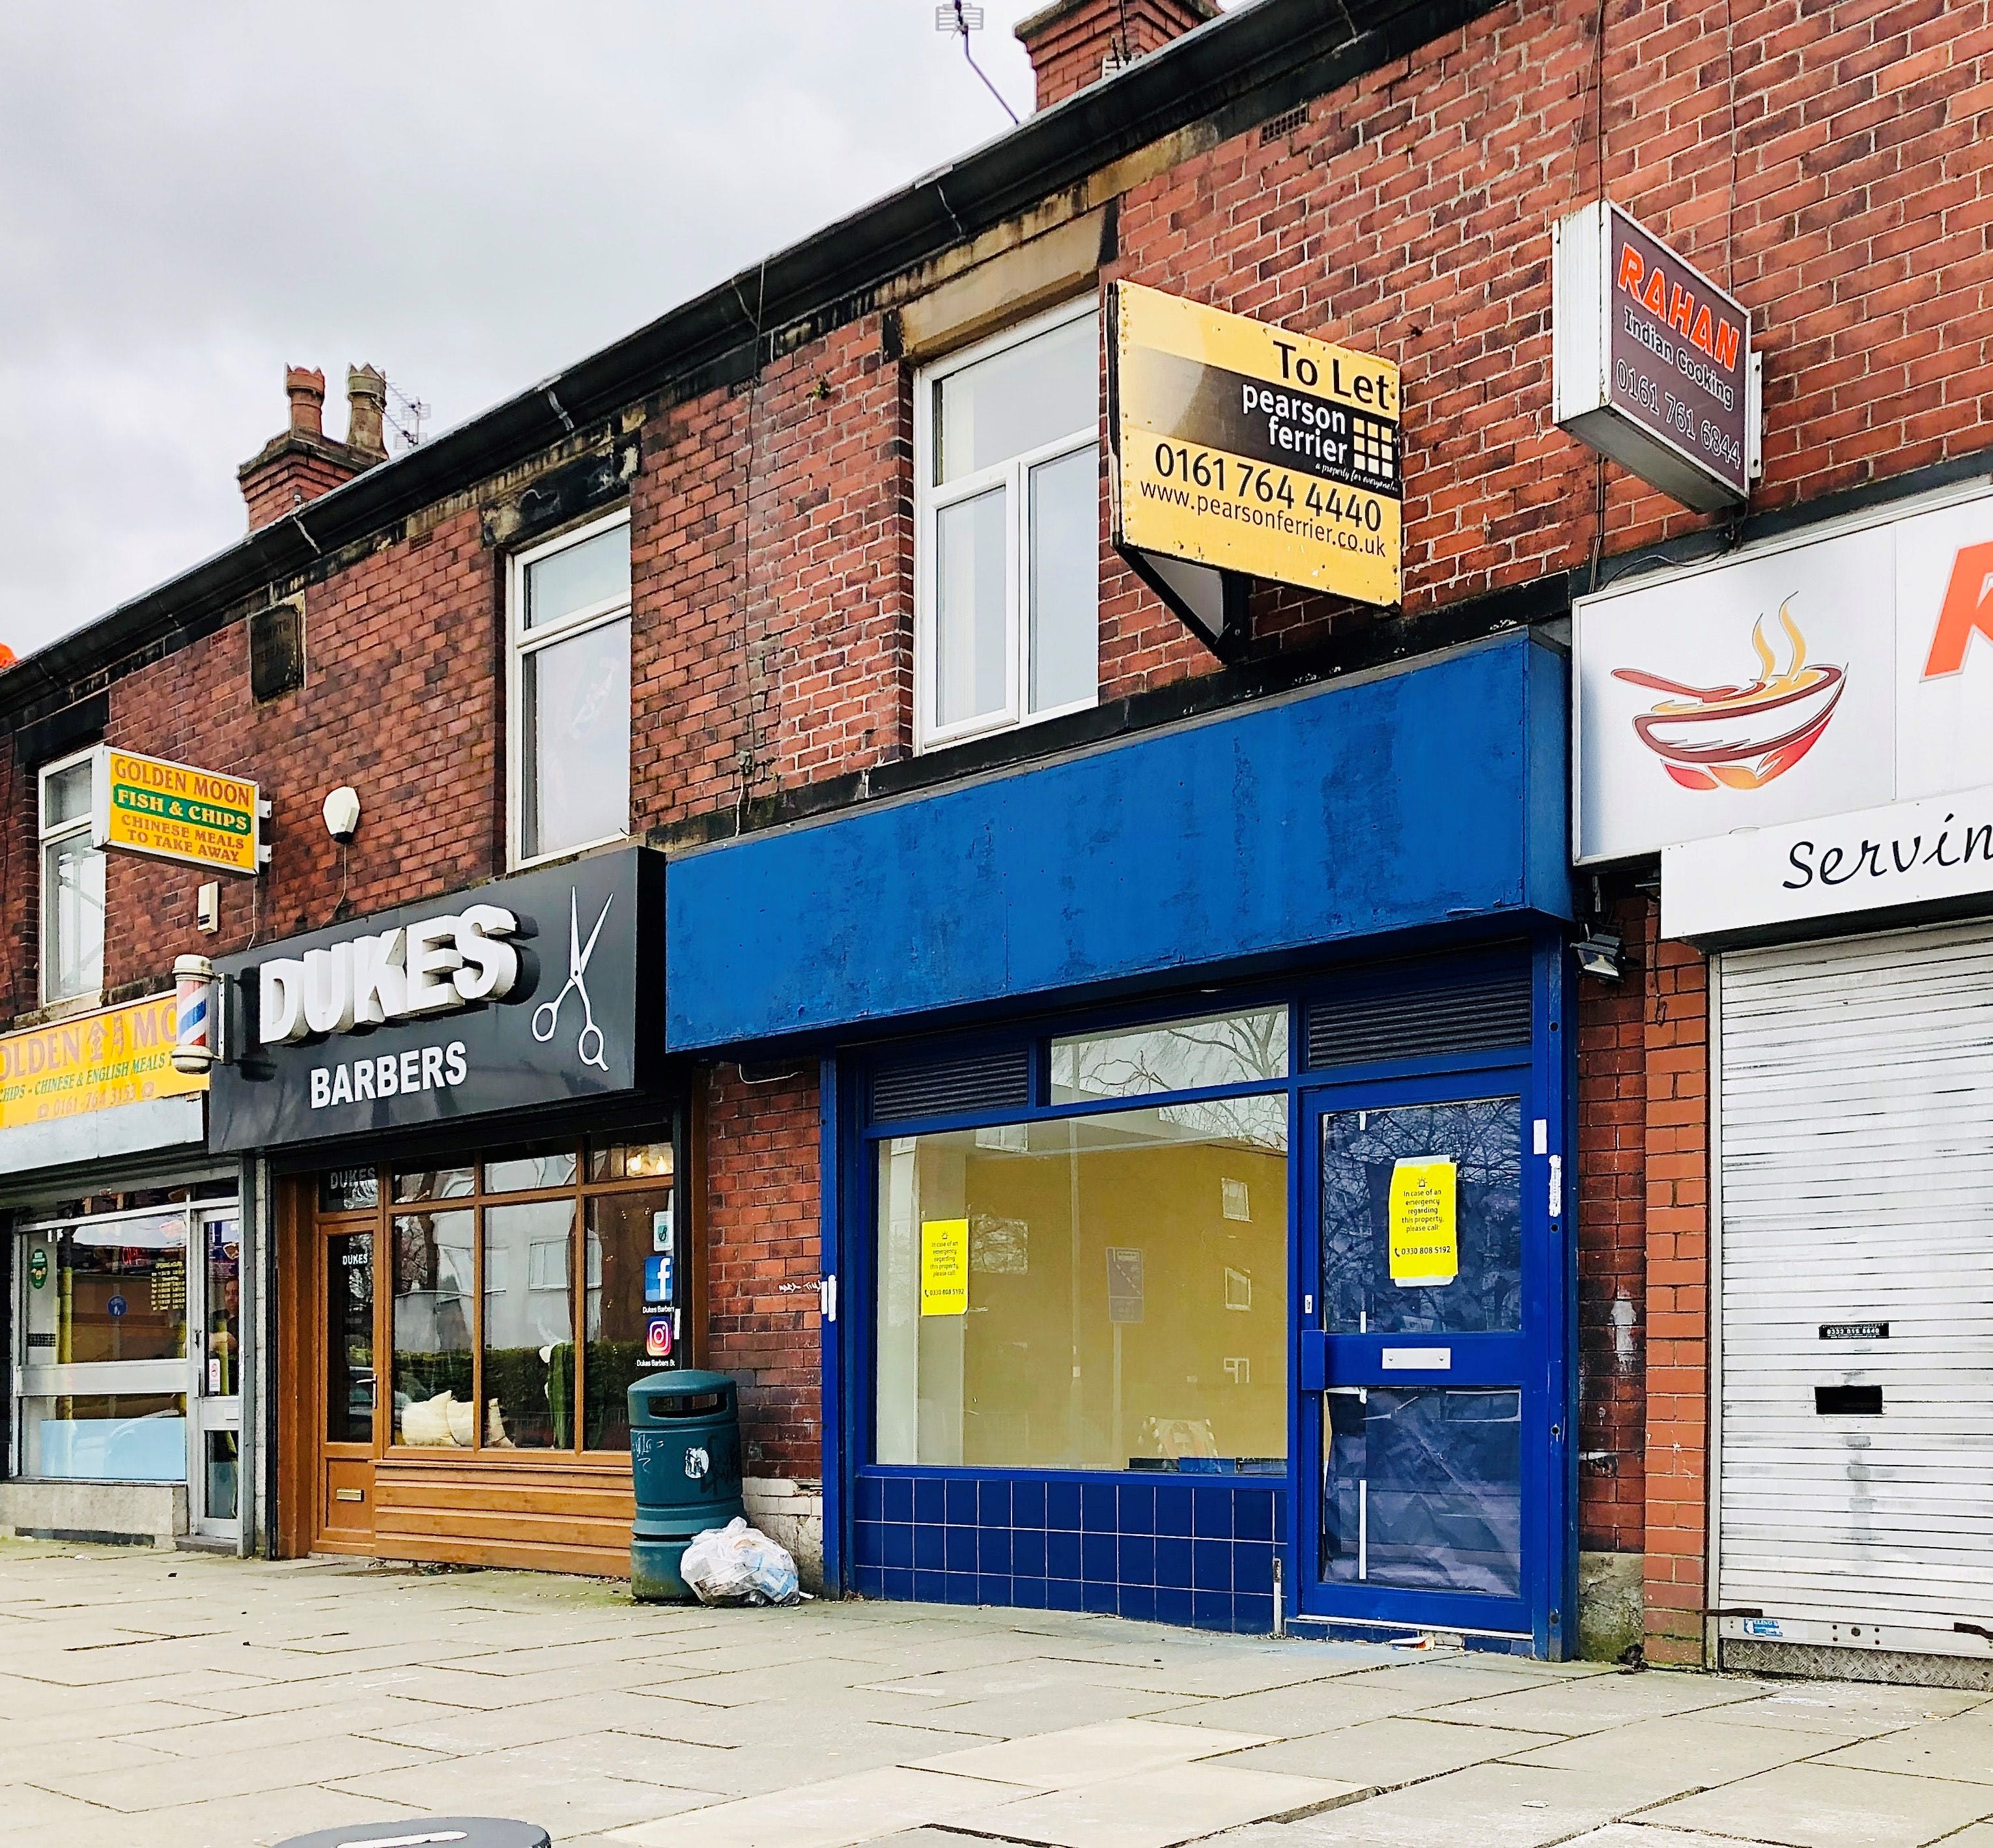 319 Bolton Road, Bury, Greater Manchester